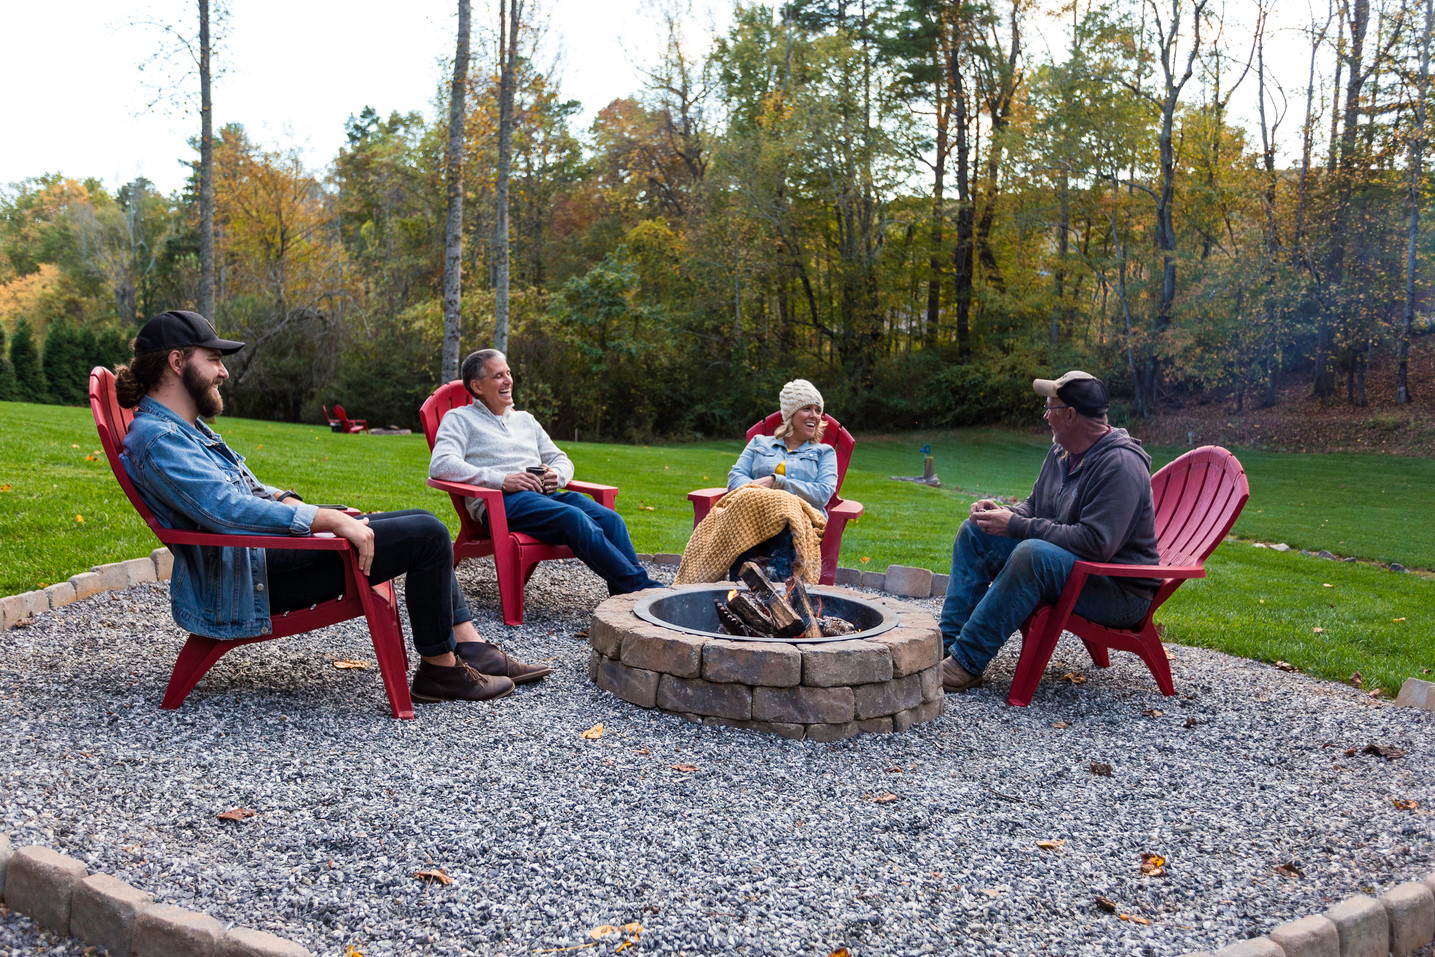 15 acres with a firepit